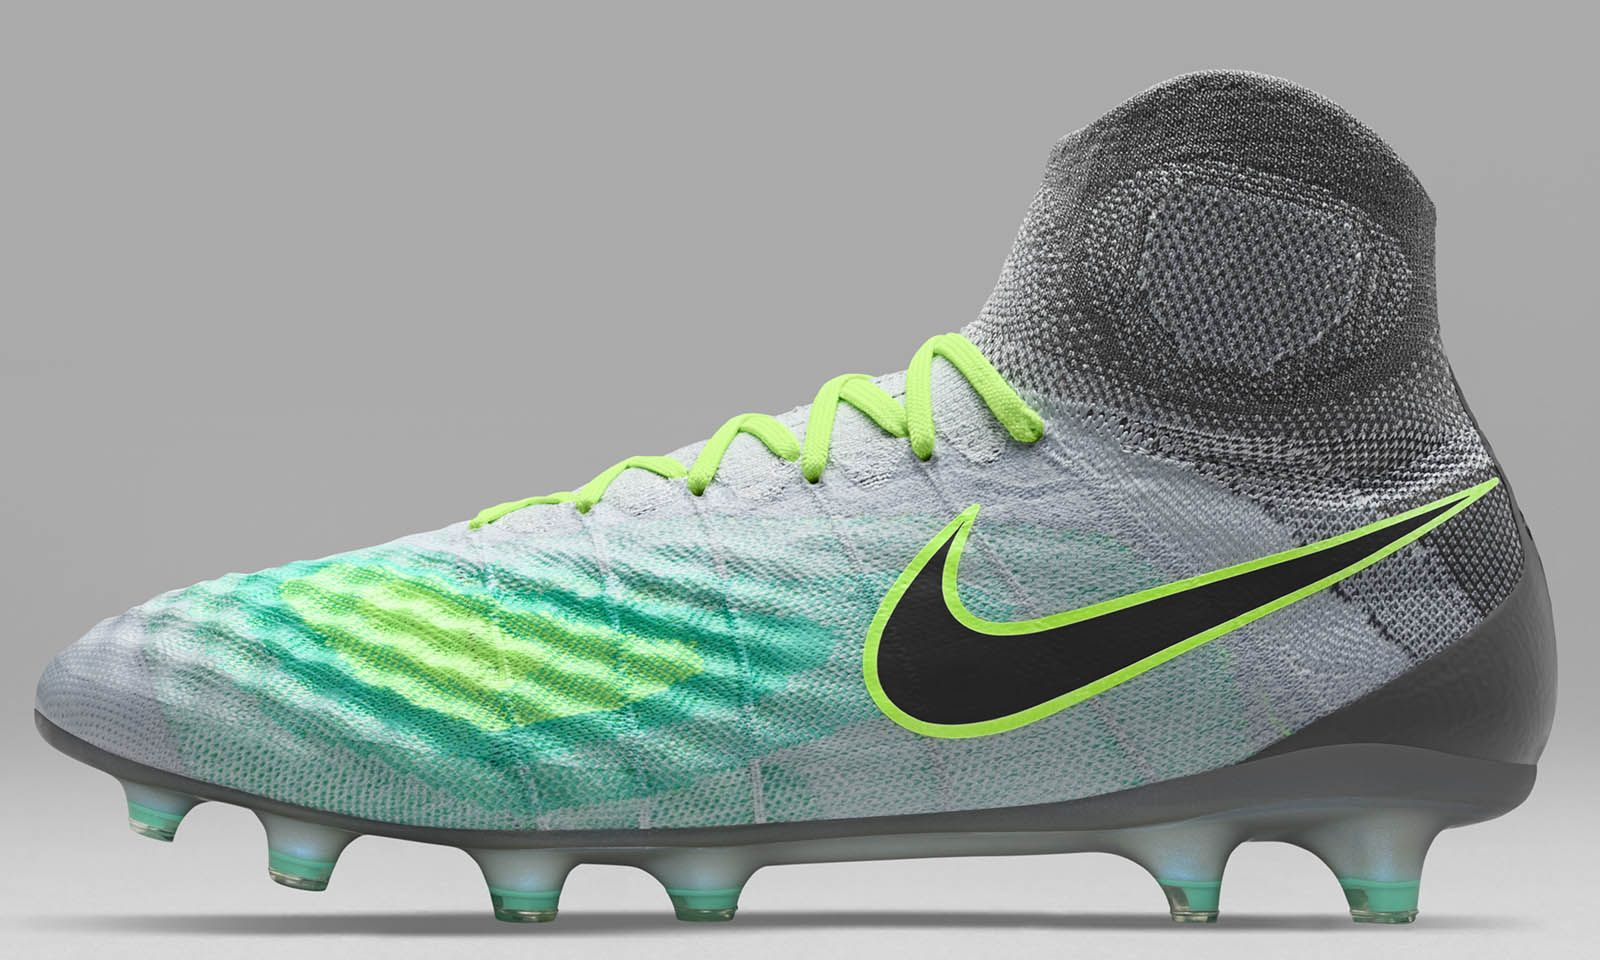 grand choix de f2da4 40e81 The Pure Platinum Nike Magista Obra II football boots ...